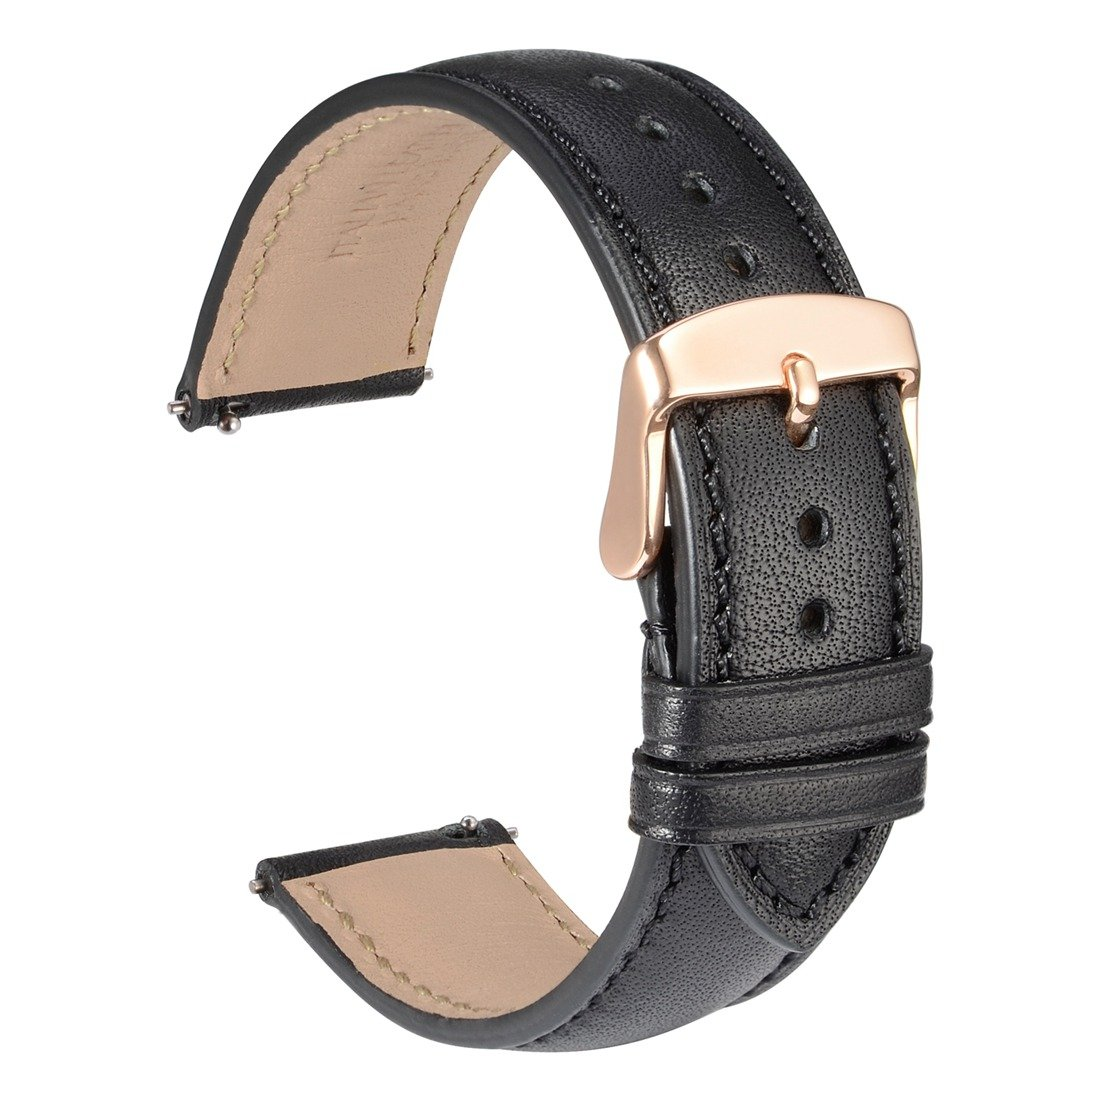 WOCCI 18mm Full Grain Leather Watch Band with Rose Gold Buckle, Quick Release Strap(Black with Tone on Tone Seam)